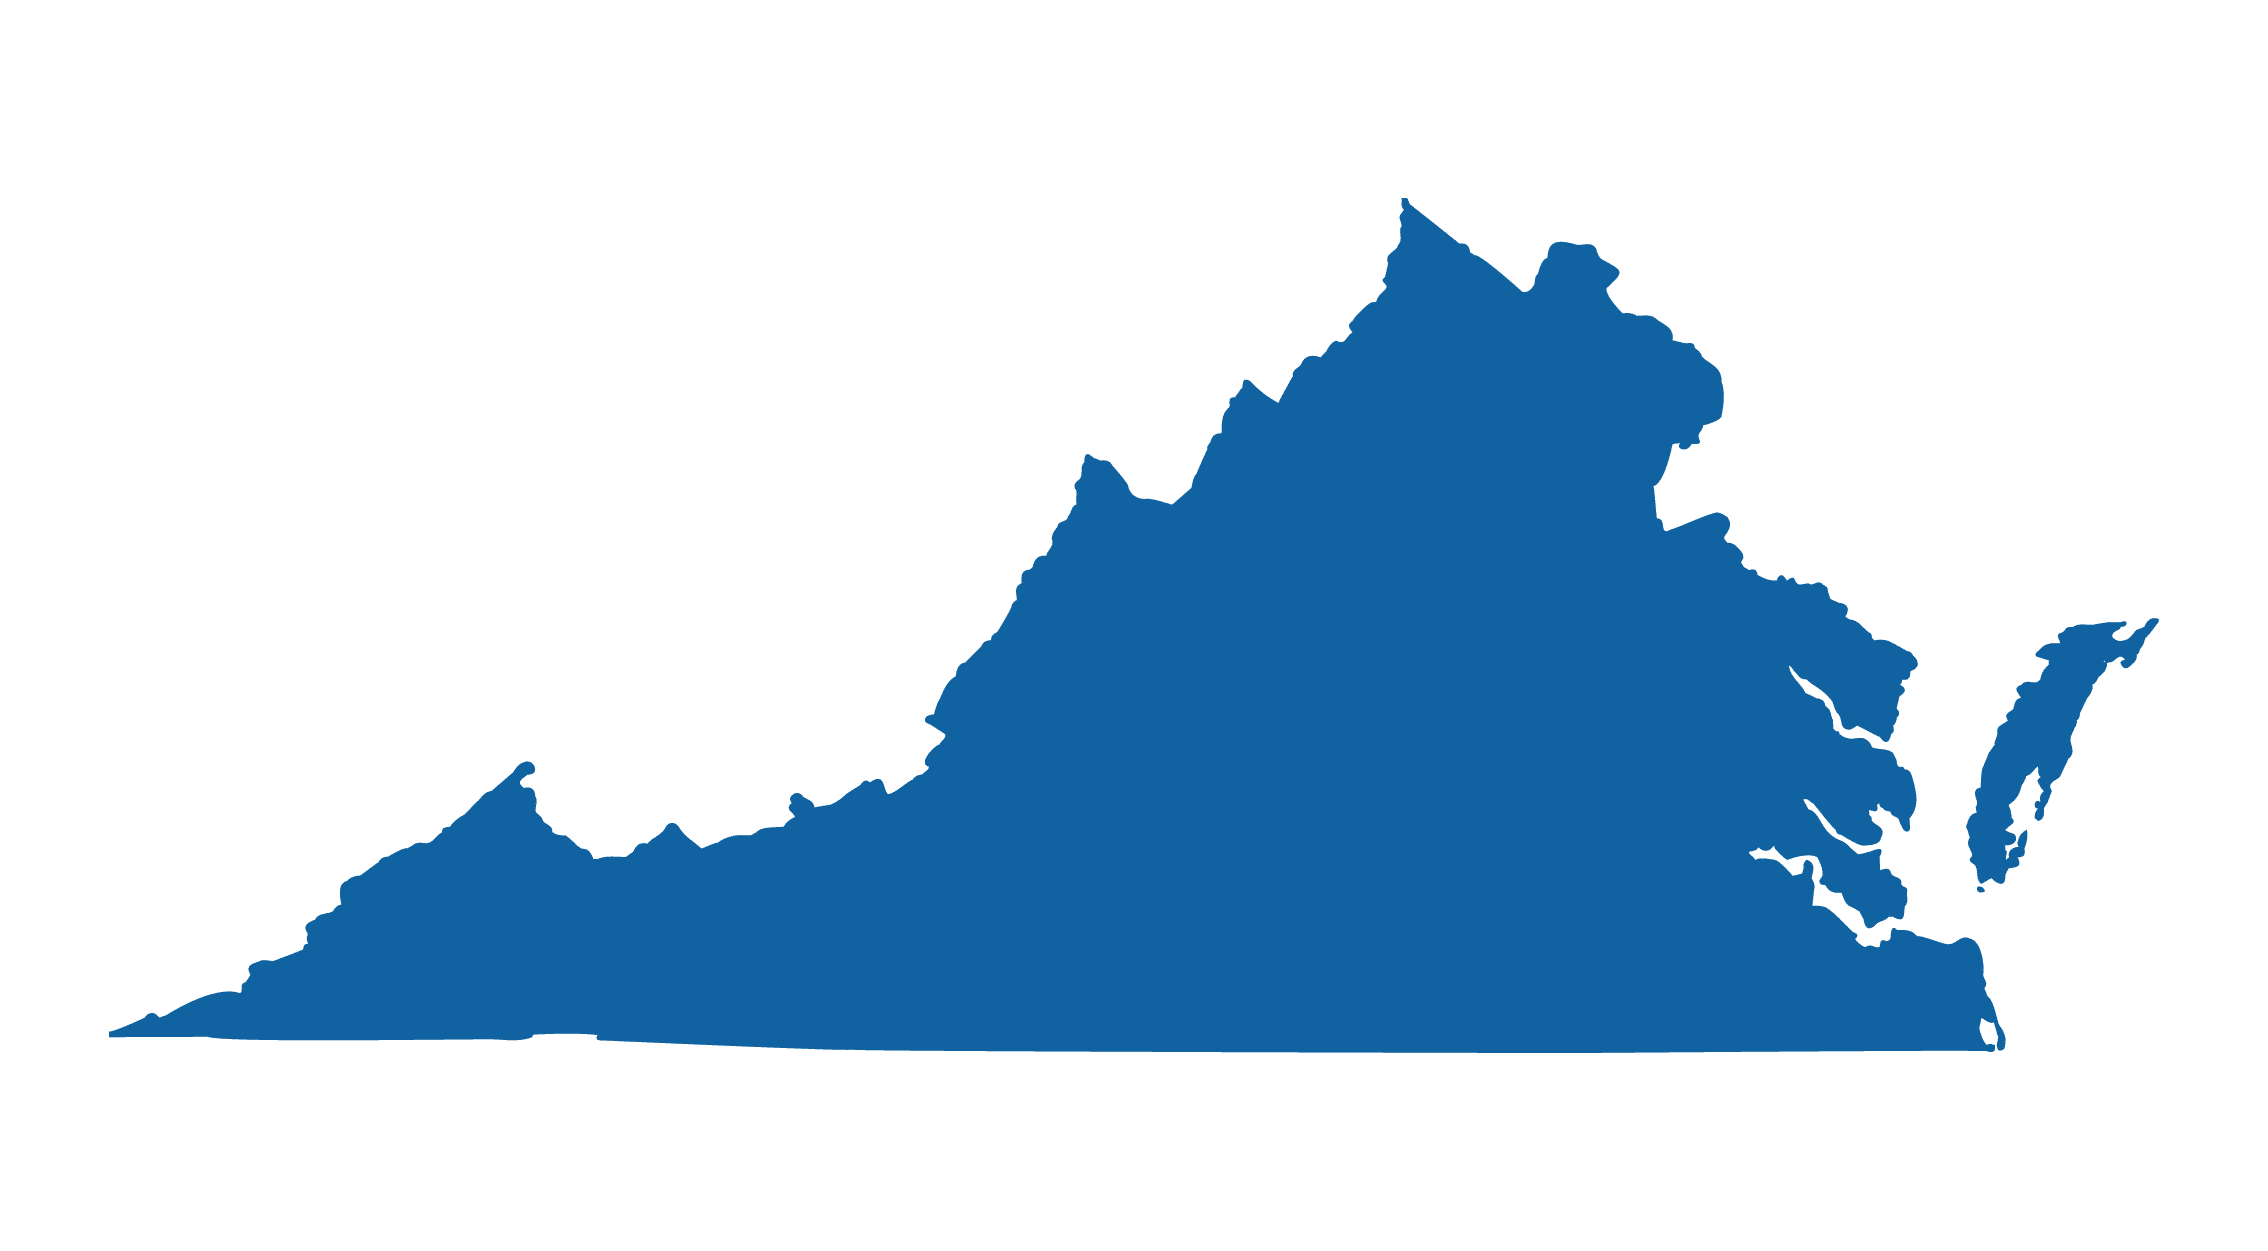 Outline of the state of Virginia colored a solid blue